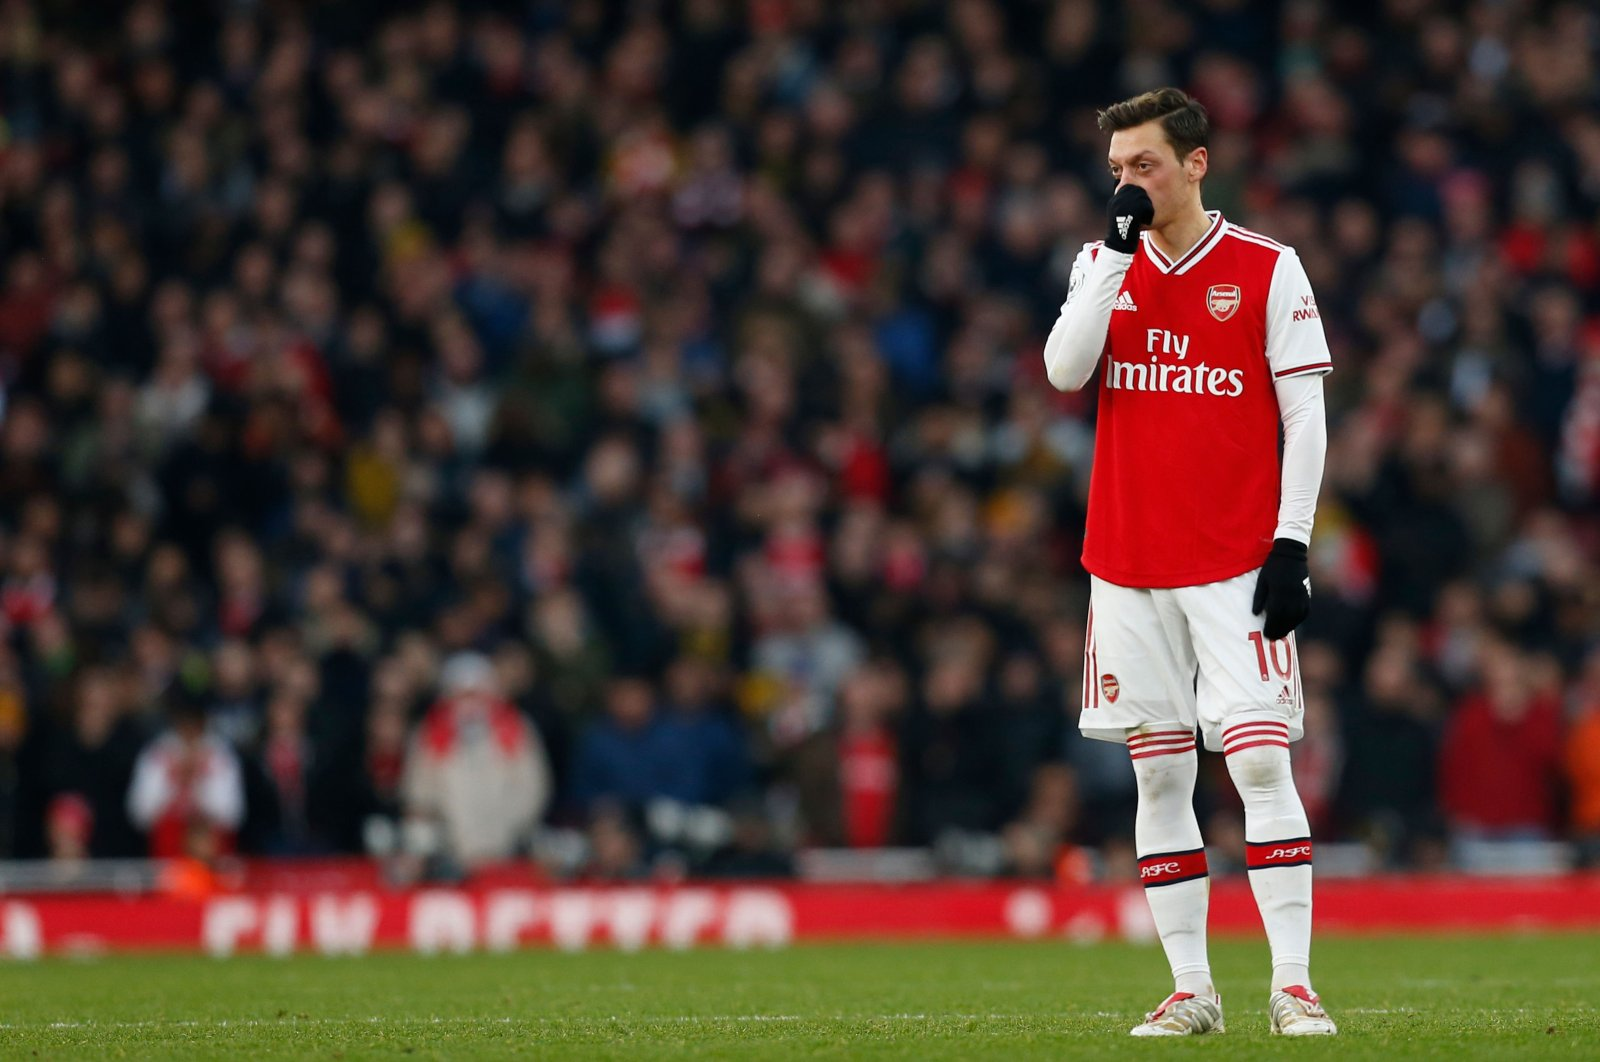 Arsenal's Mesut Özil reacts during a Premier League match against Chelsea, in London, Britain, Dec. 29, 2019. (AFP Photo)